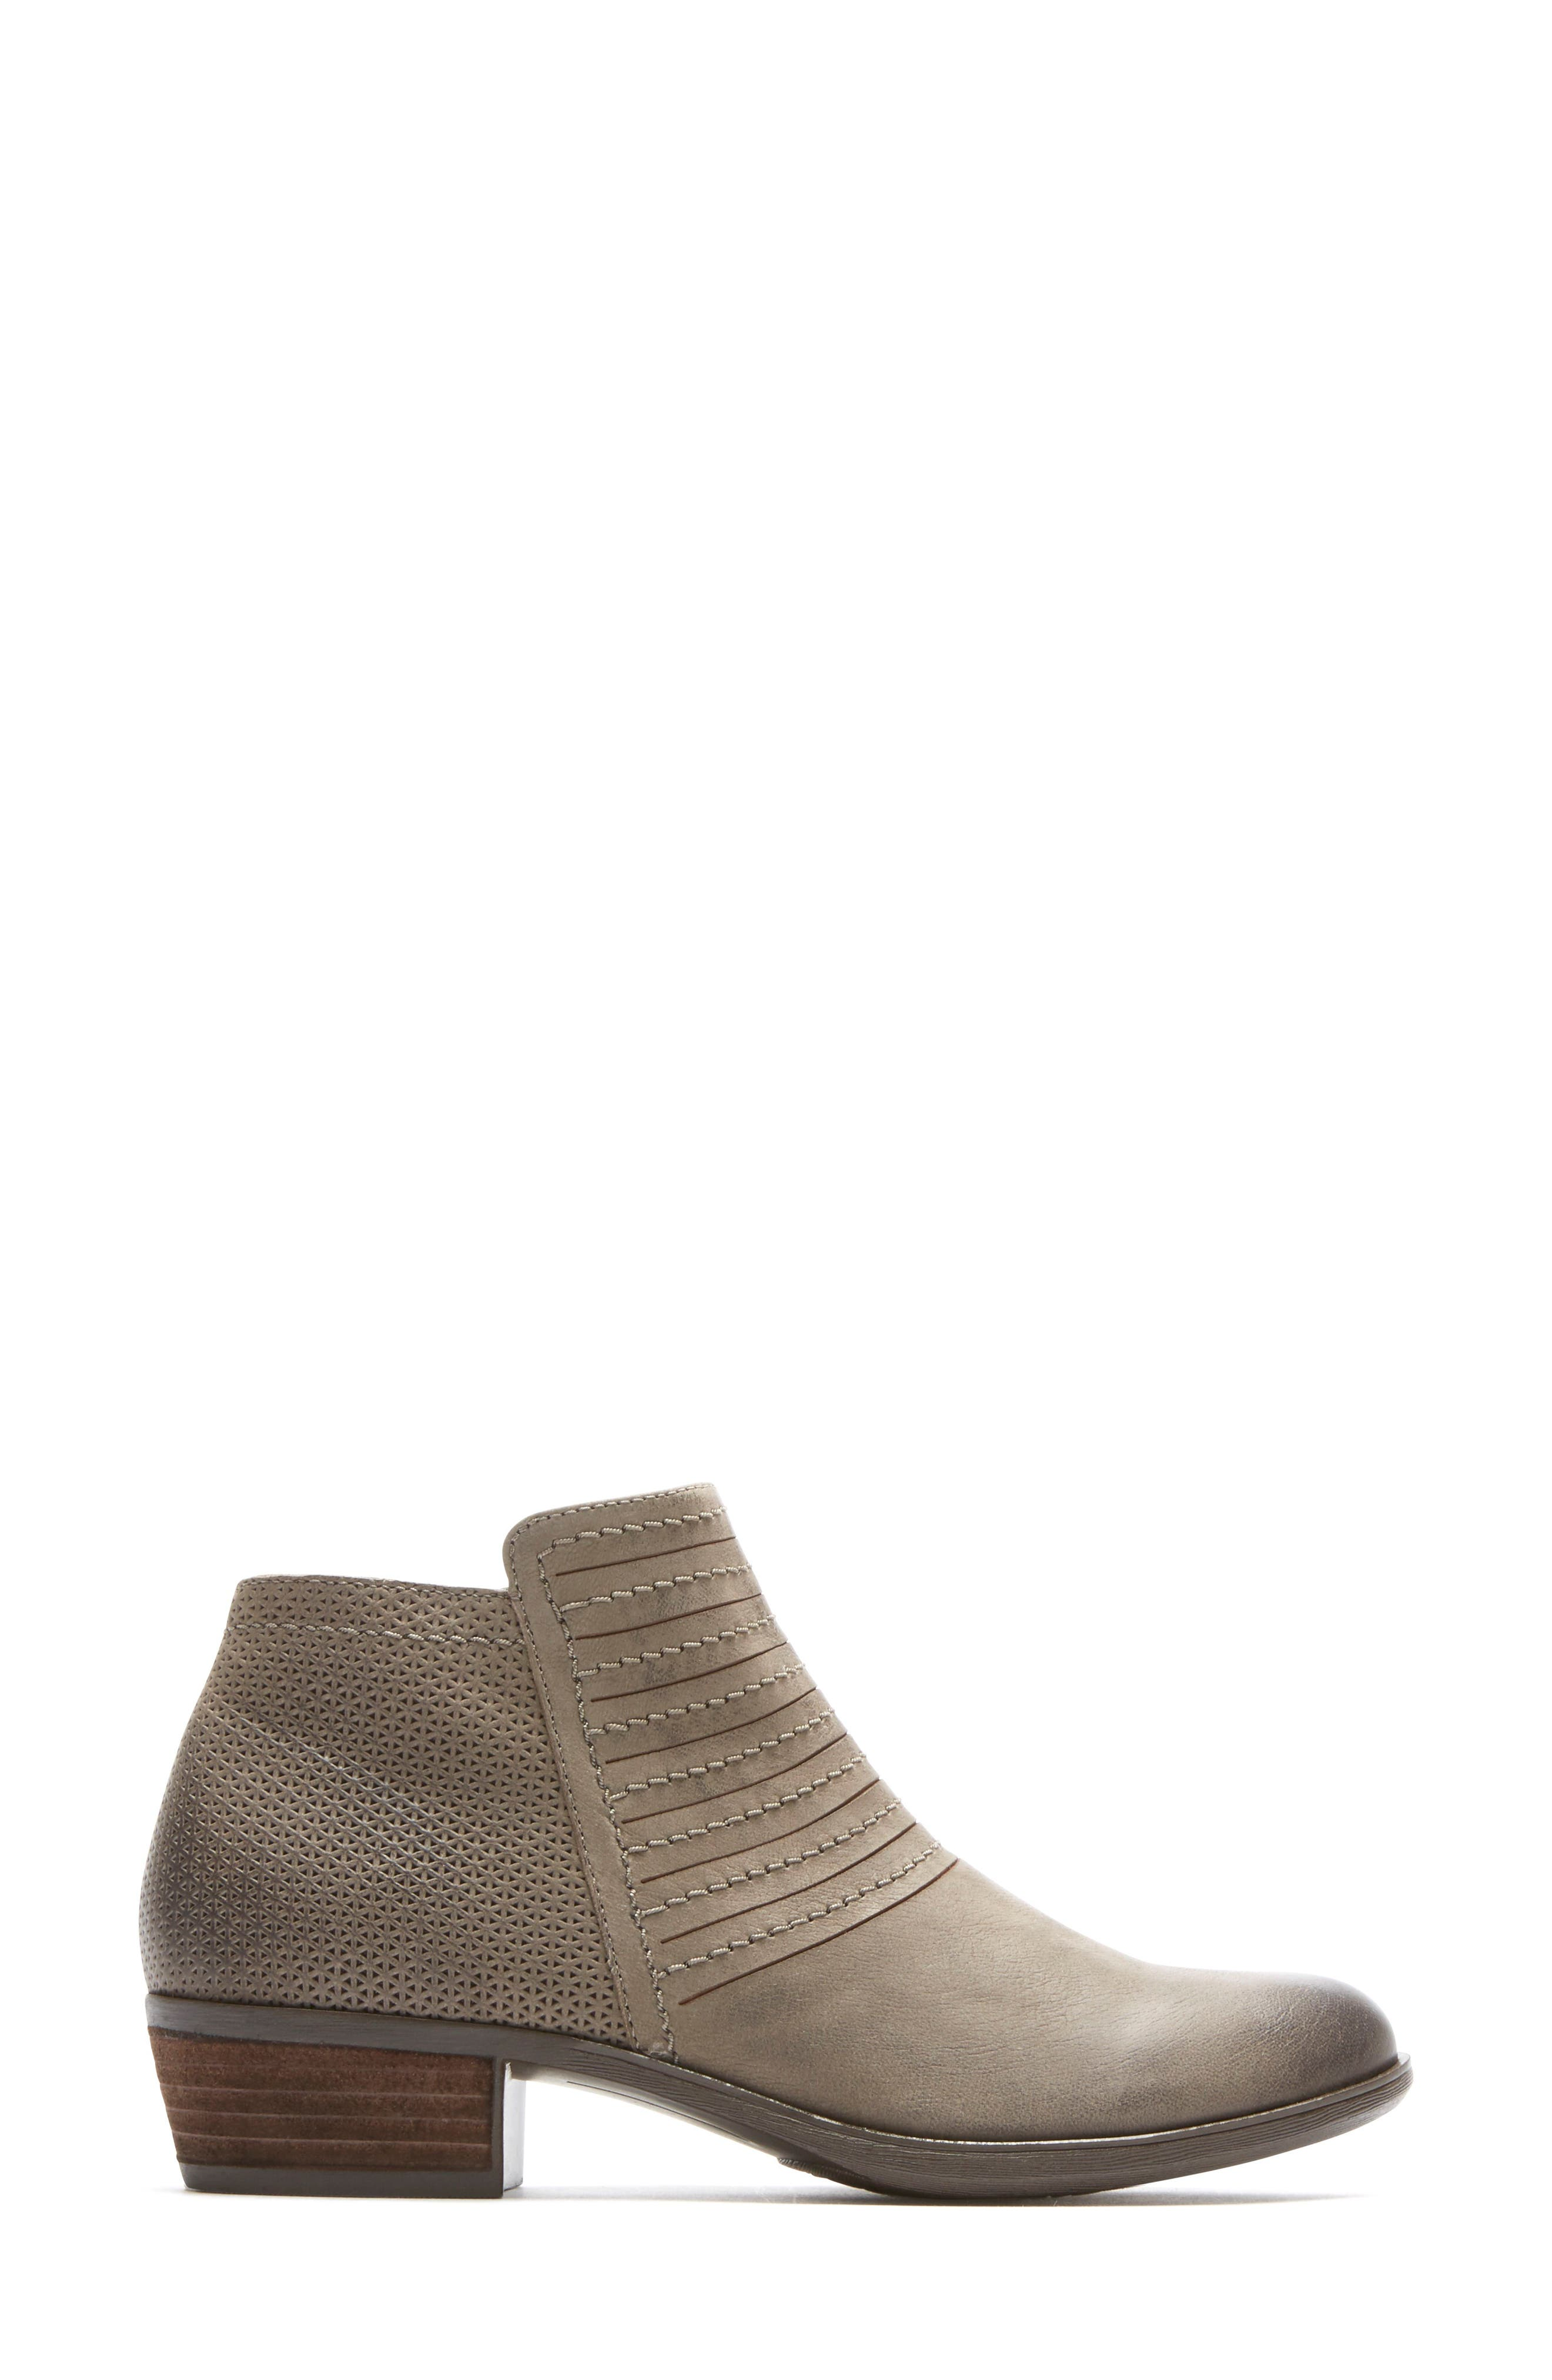 Vanna Strappy Bootie,                             Alternate thumbnail 3, color,                             Olive Grey Nubuck